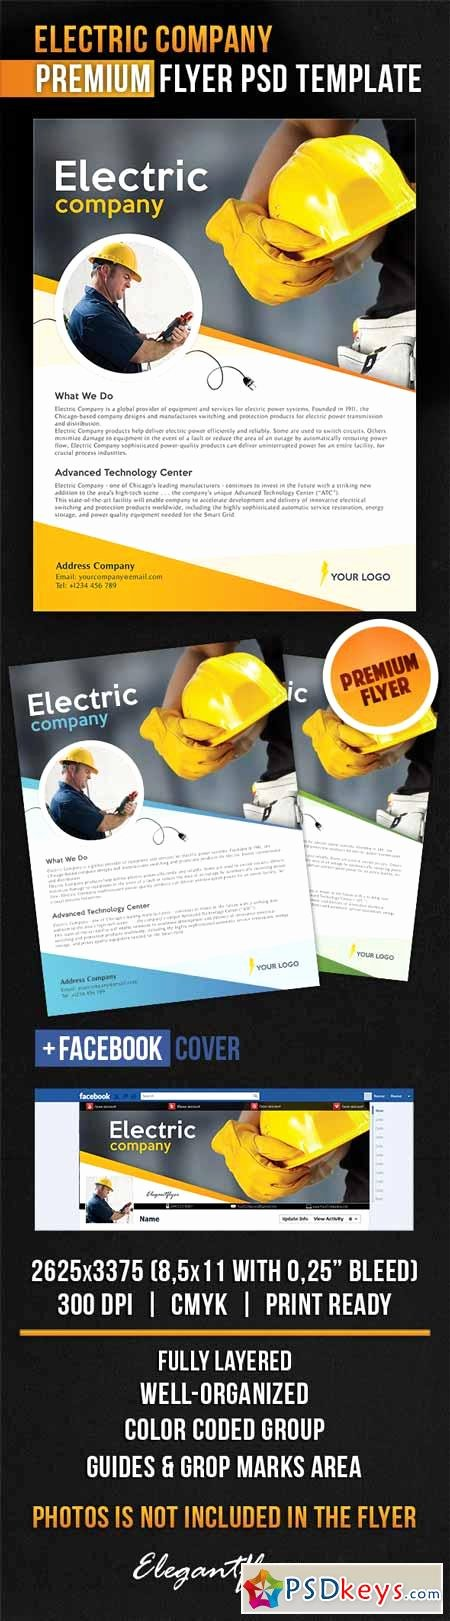 Electric Pany – Flyer Psd Template Cover